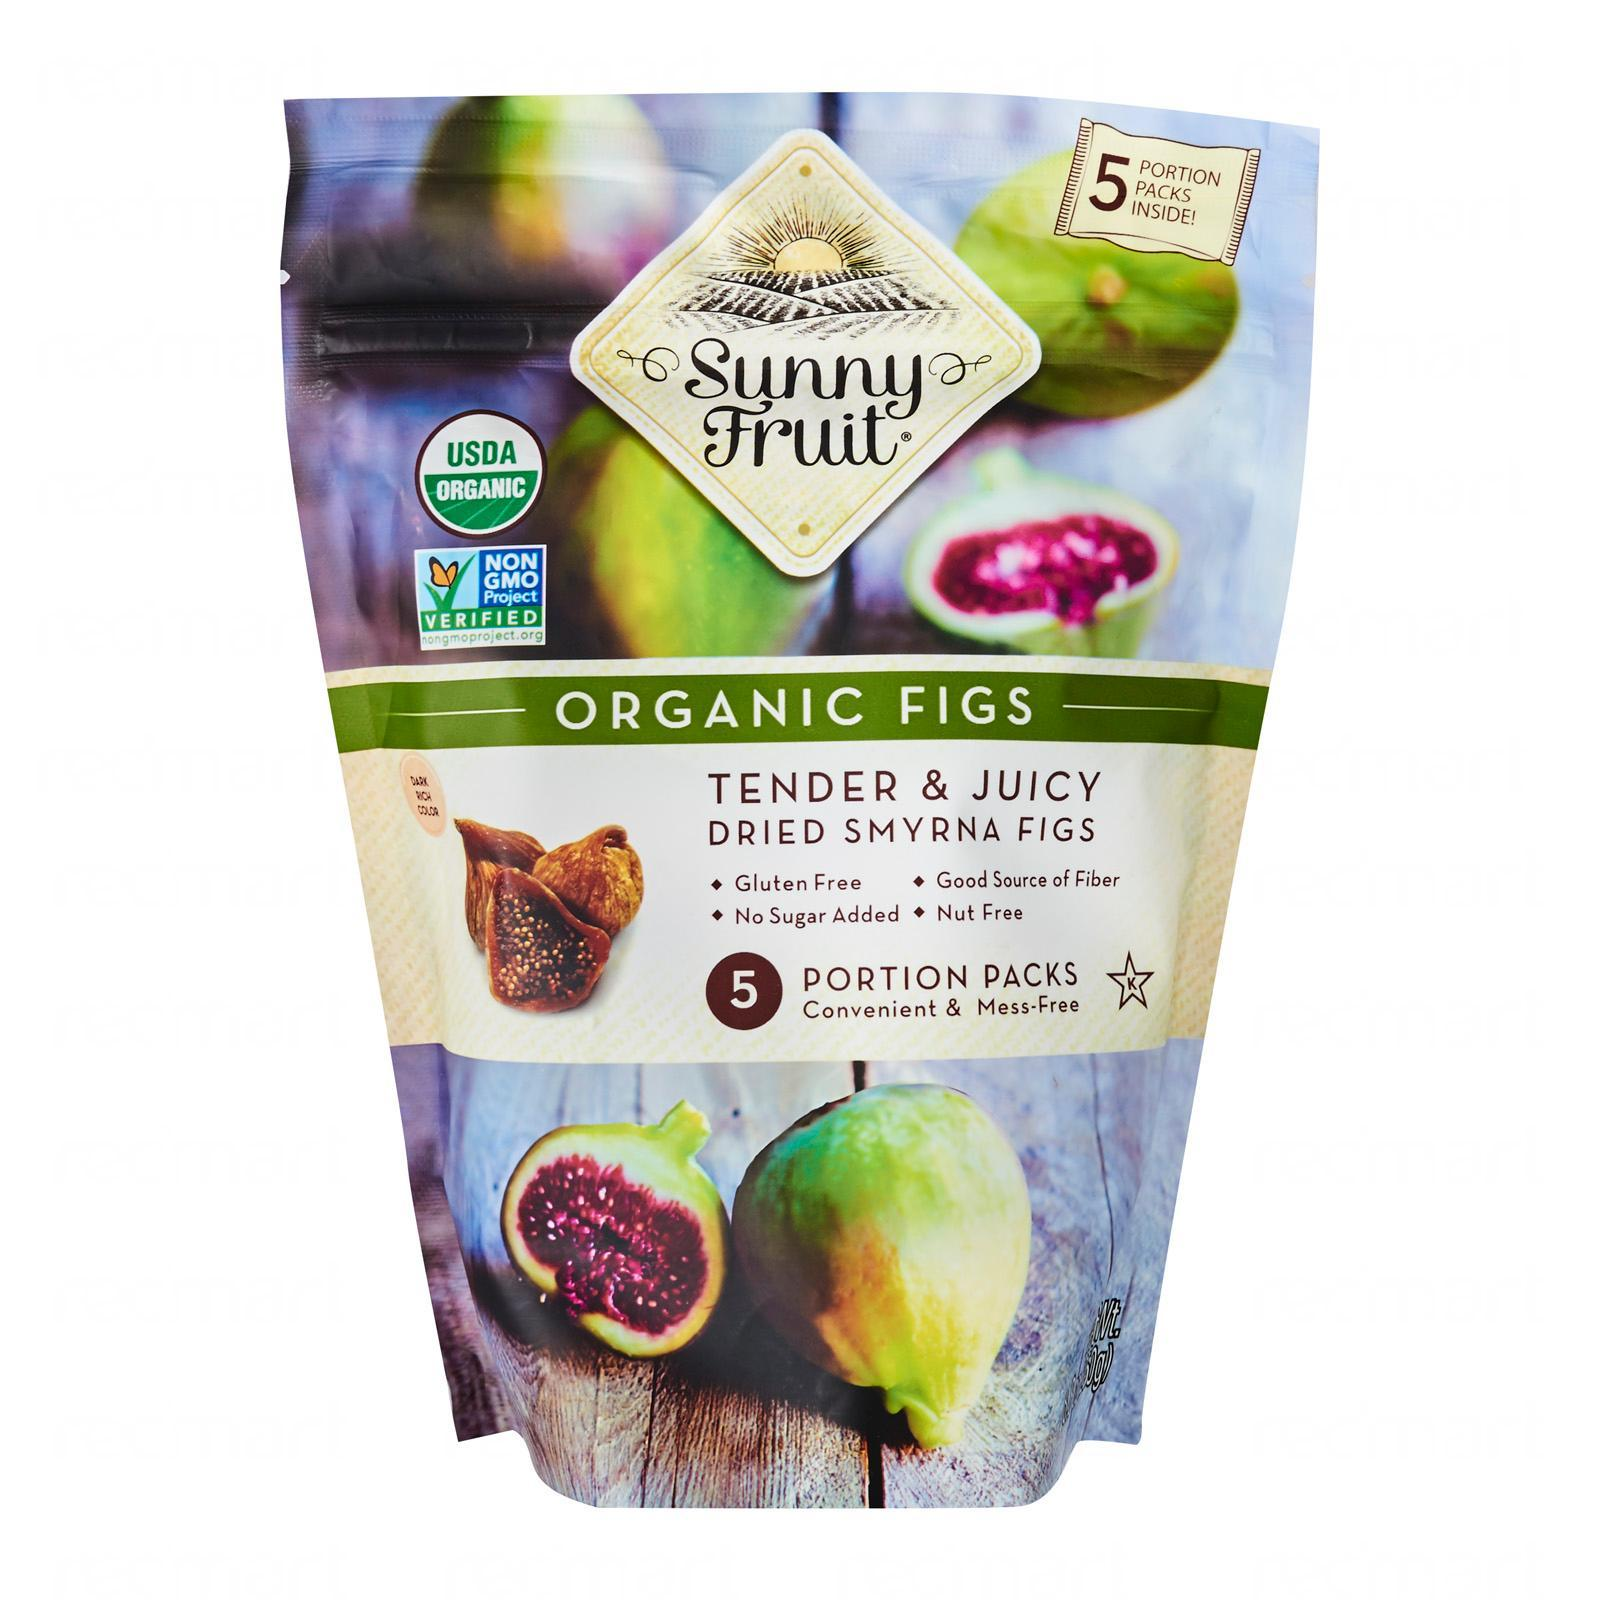 Sunny Fruit Organic Figs (5 Packs) - By Wholesome Harvest